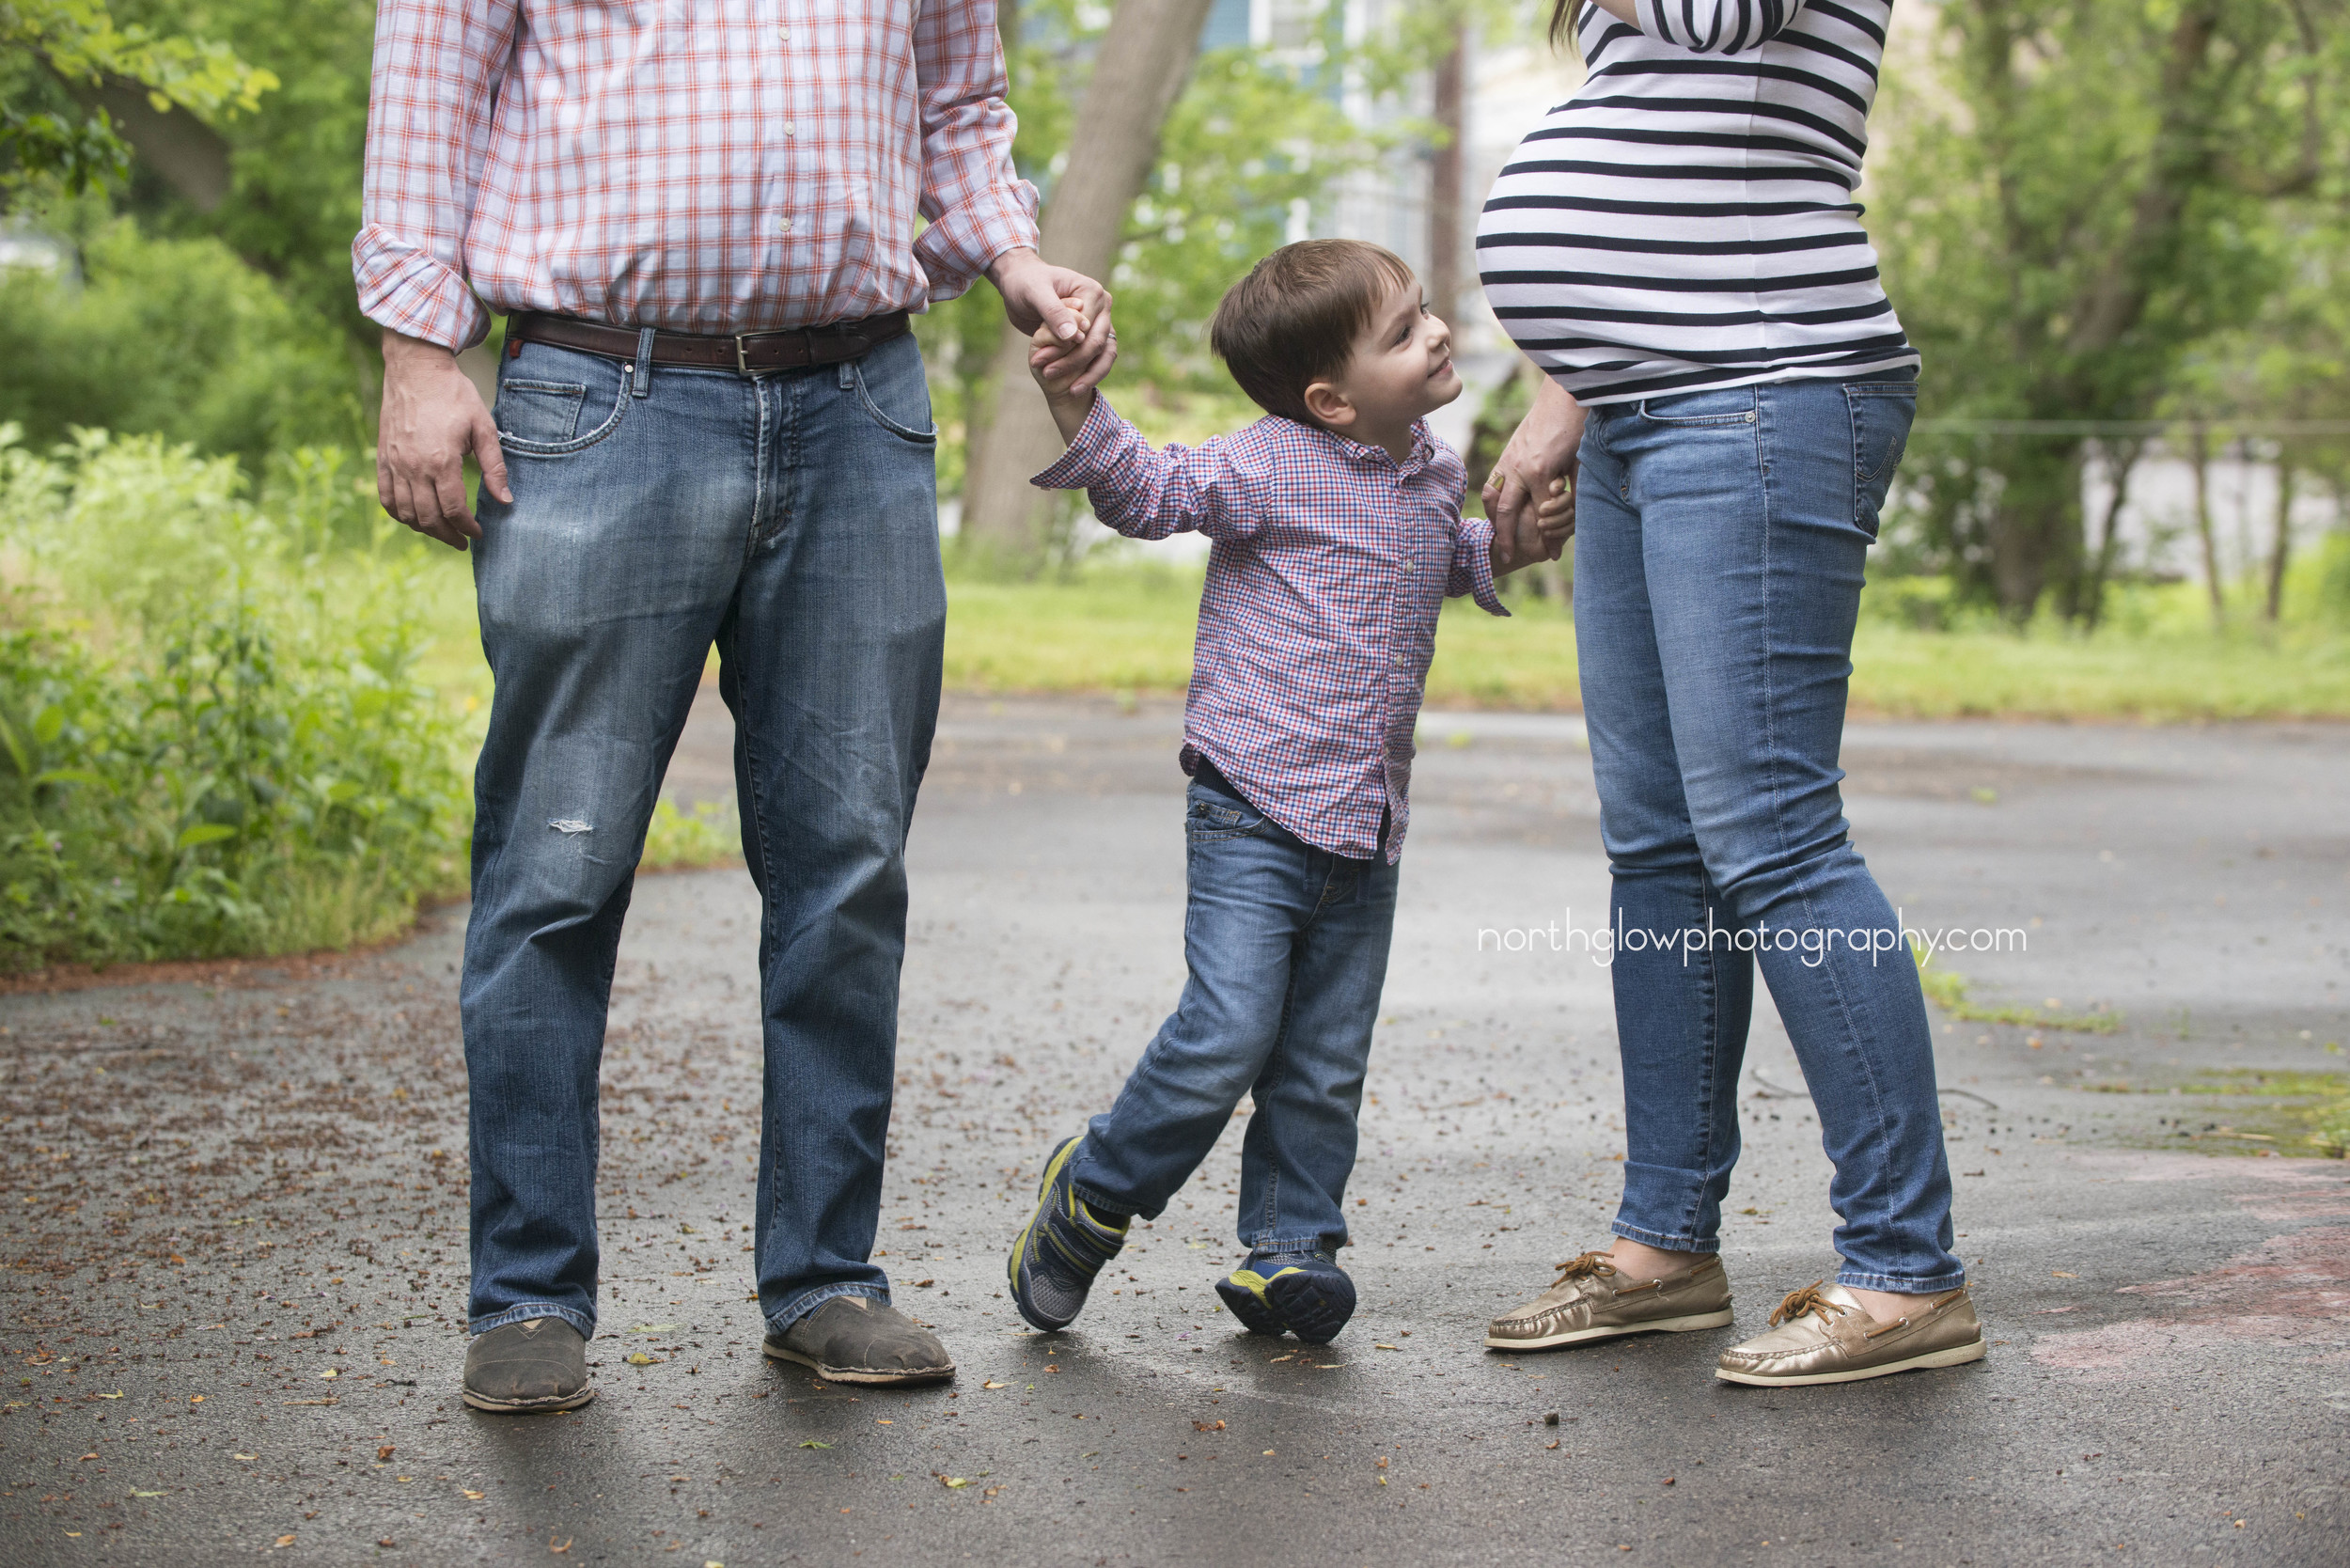 Soon-to-be party of 4 | NorthGlow Photography